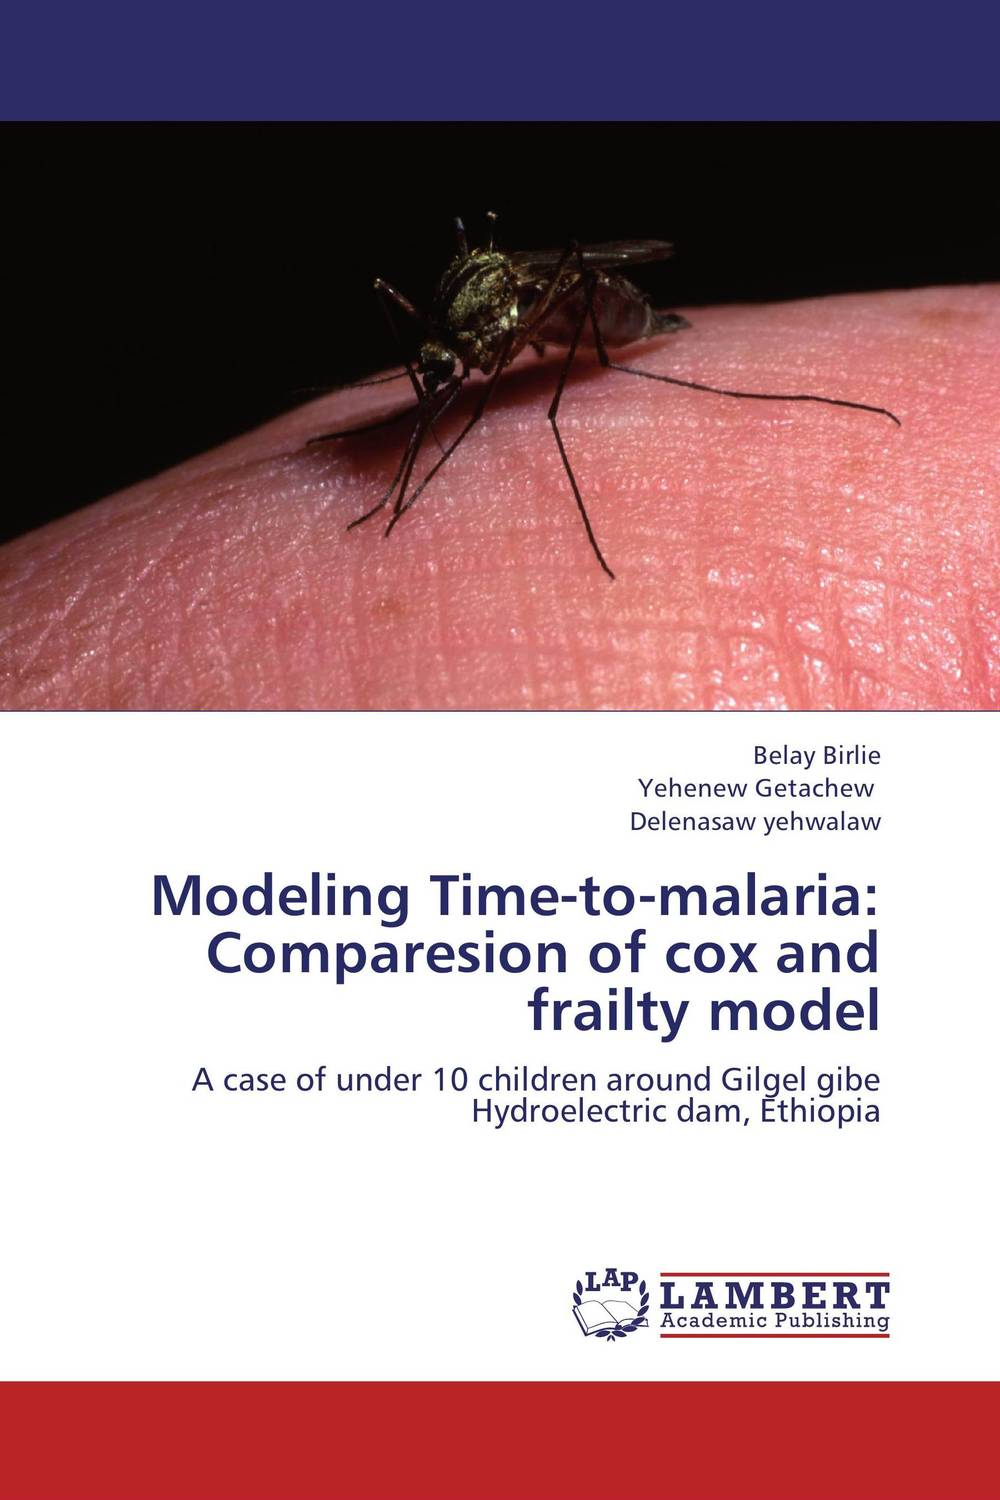 Modeling Time-to-malaria: Comparesion of cox and frailty model paichuan chen extending the quandt ramsey modeling to survival analysis